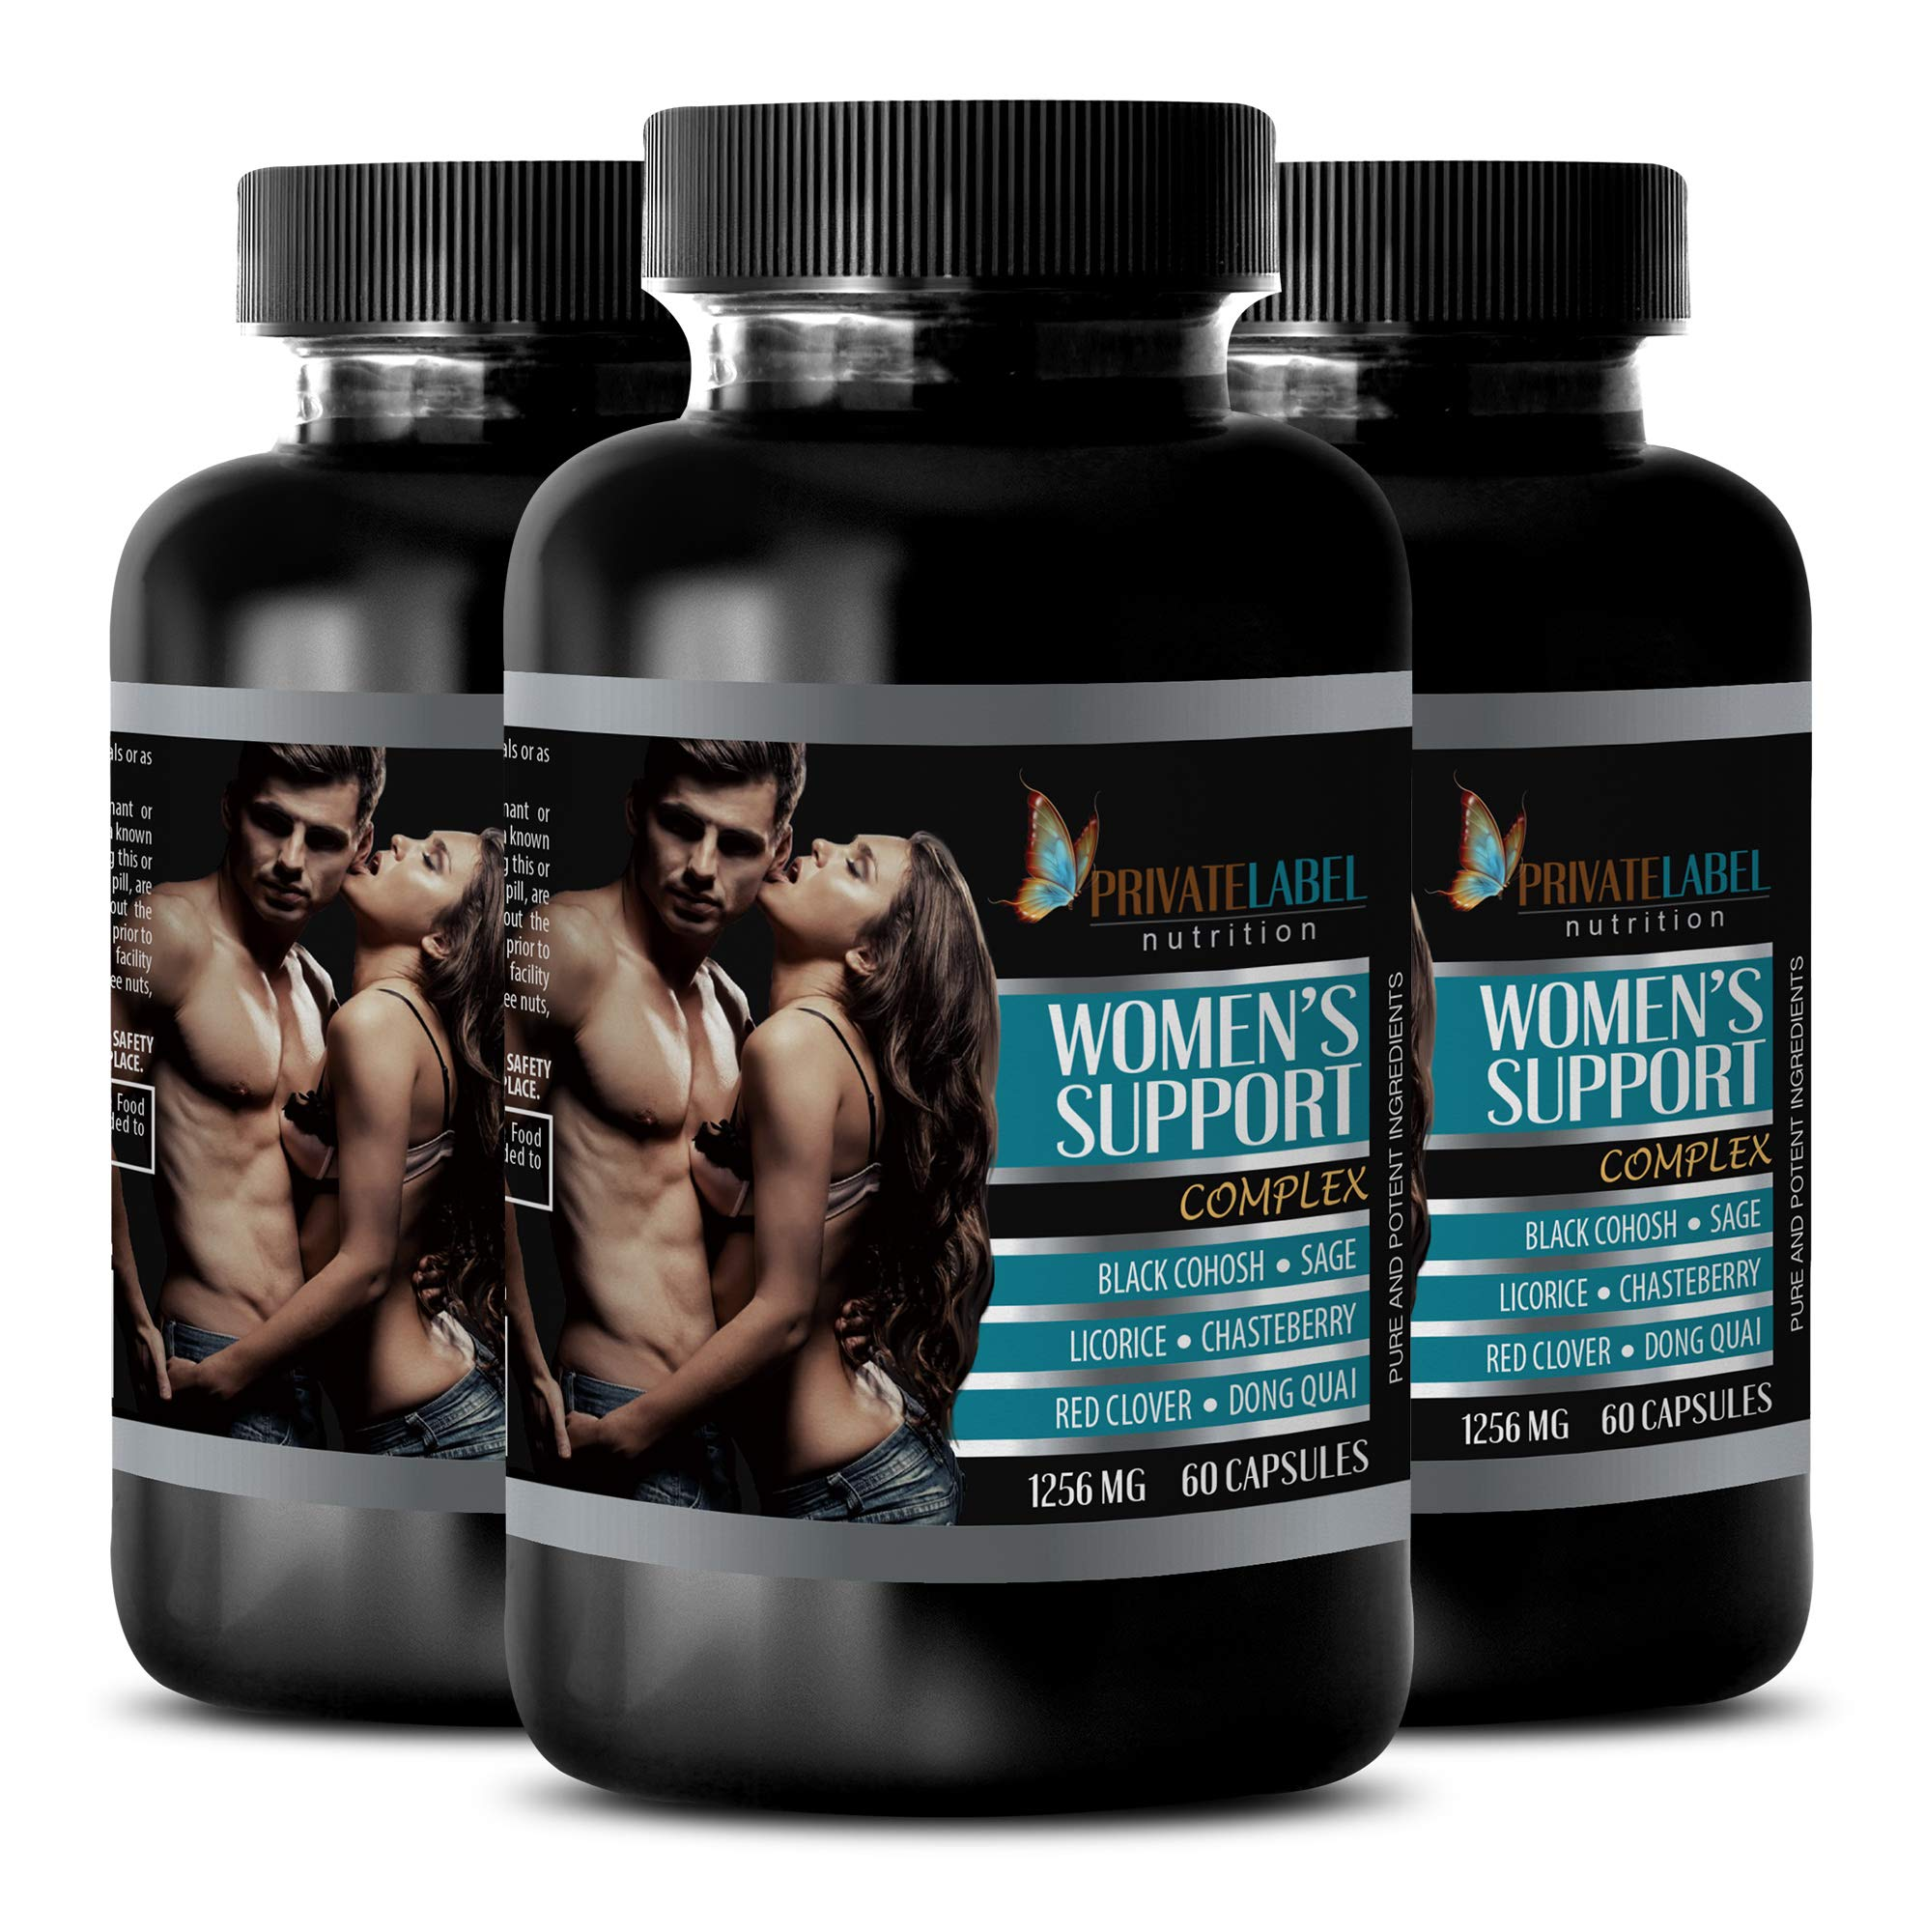 Heart Health Vitamins for Women - Women's Support Complex - Pure and Potent Ingredients - Immune Boost Pills - 3 Bottles (180 Capsules)